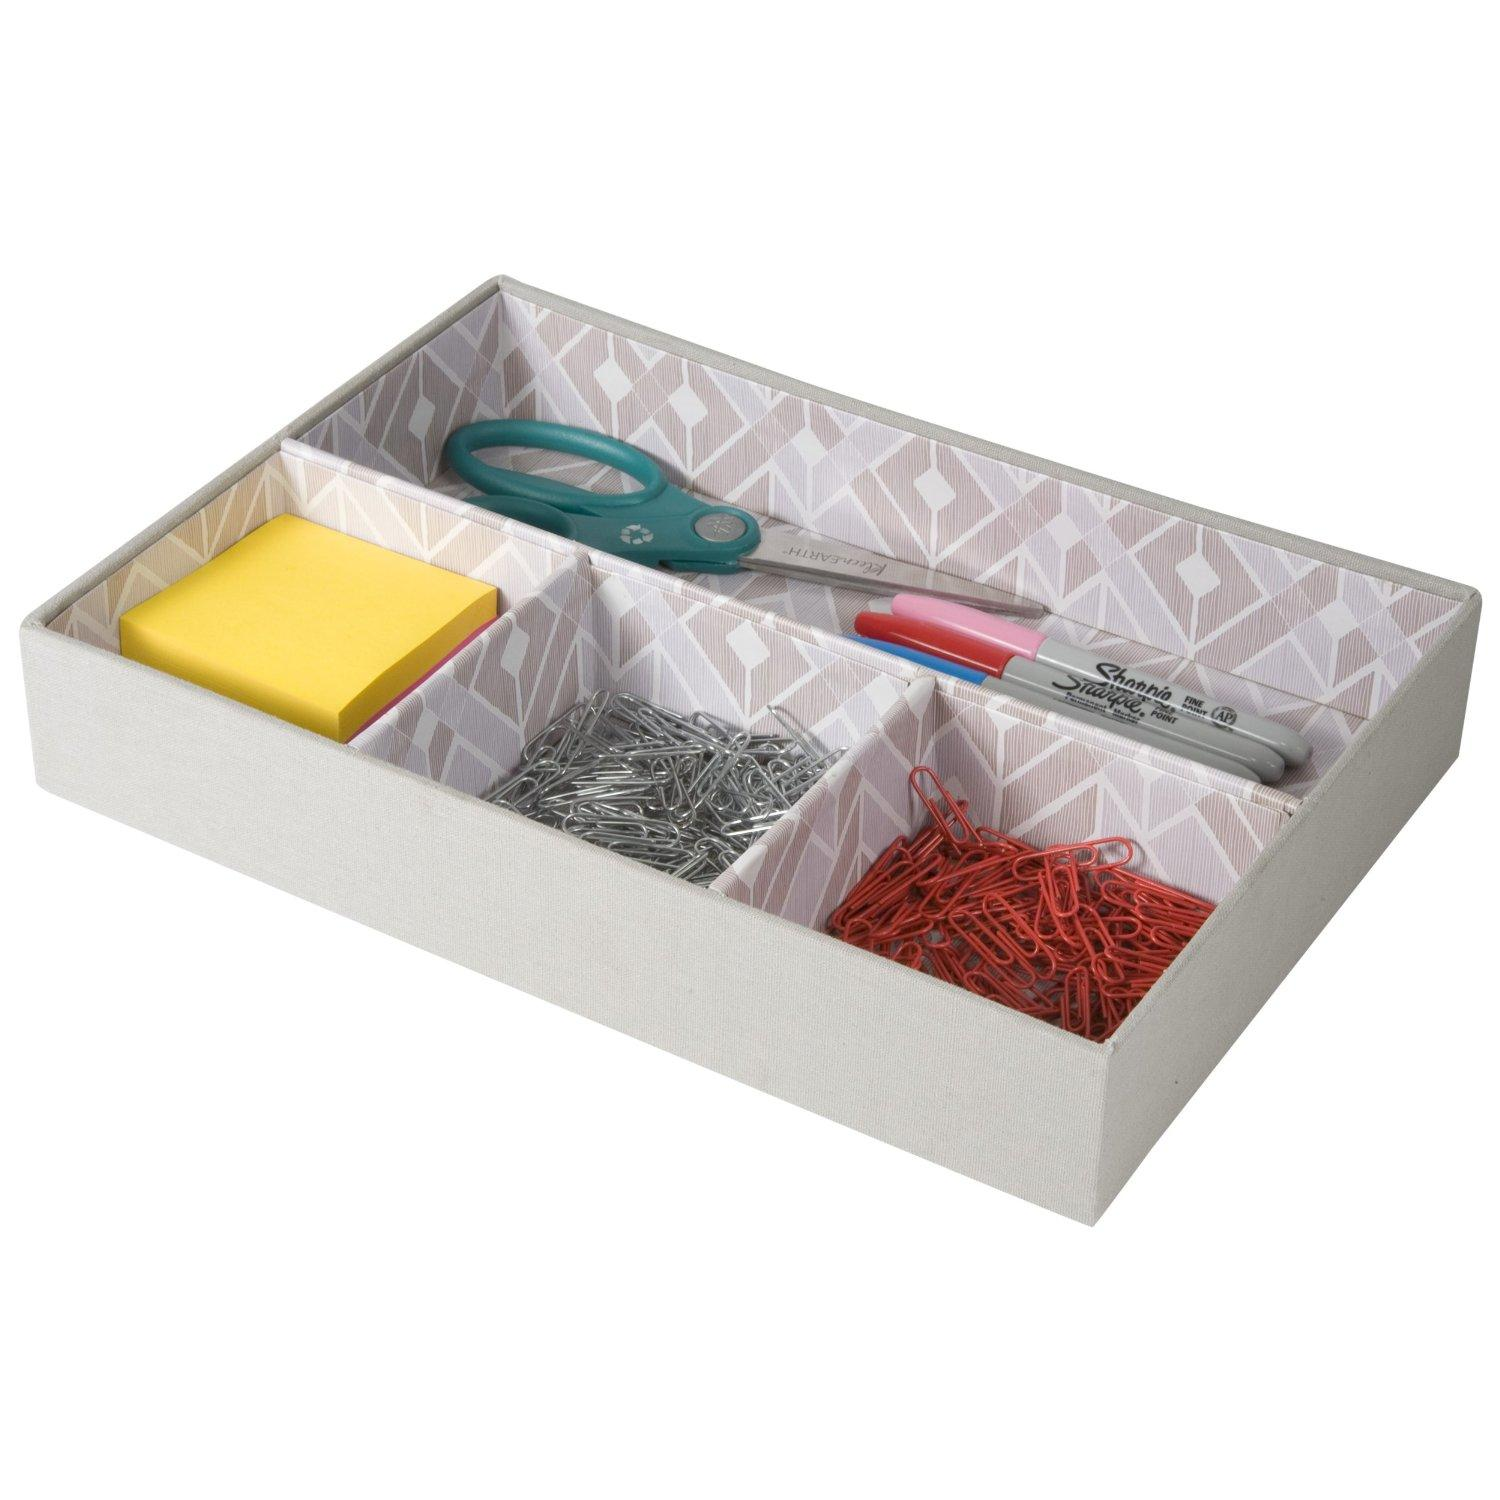 Decorative Sectional Table Top Organizer From Amazon Desk